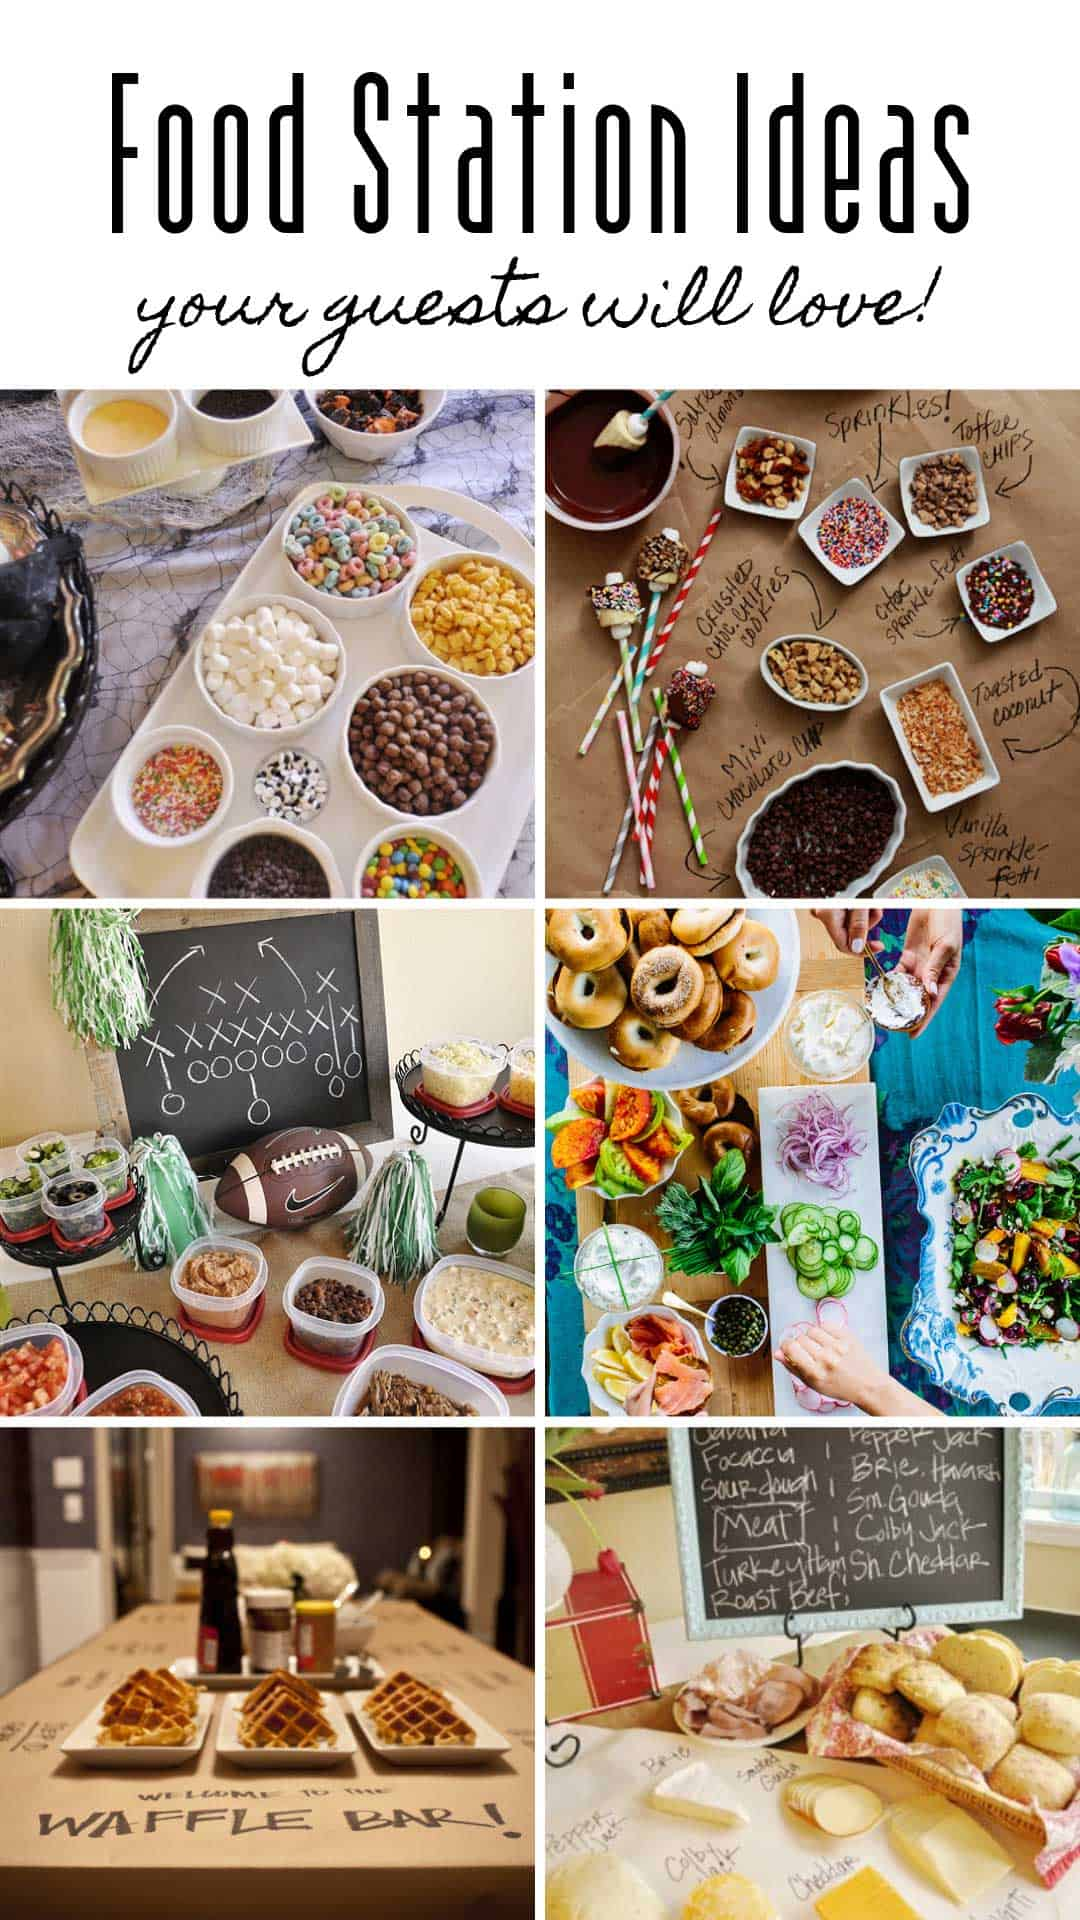 These food bar ideas are perfect for your graduation party, baby shower or wedding reception. We have so many great food station ideas to choose from - everything from waffles and donuts to savory choices!